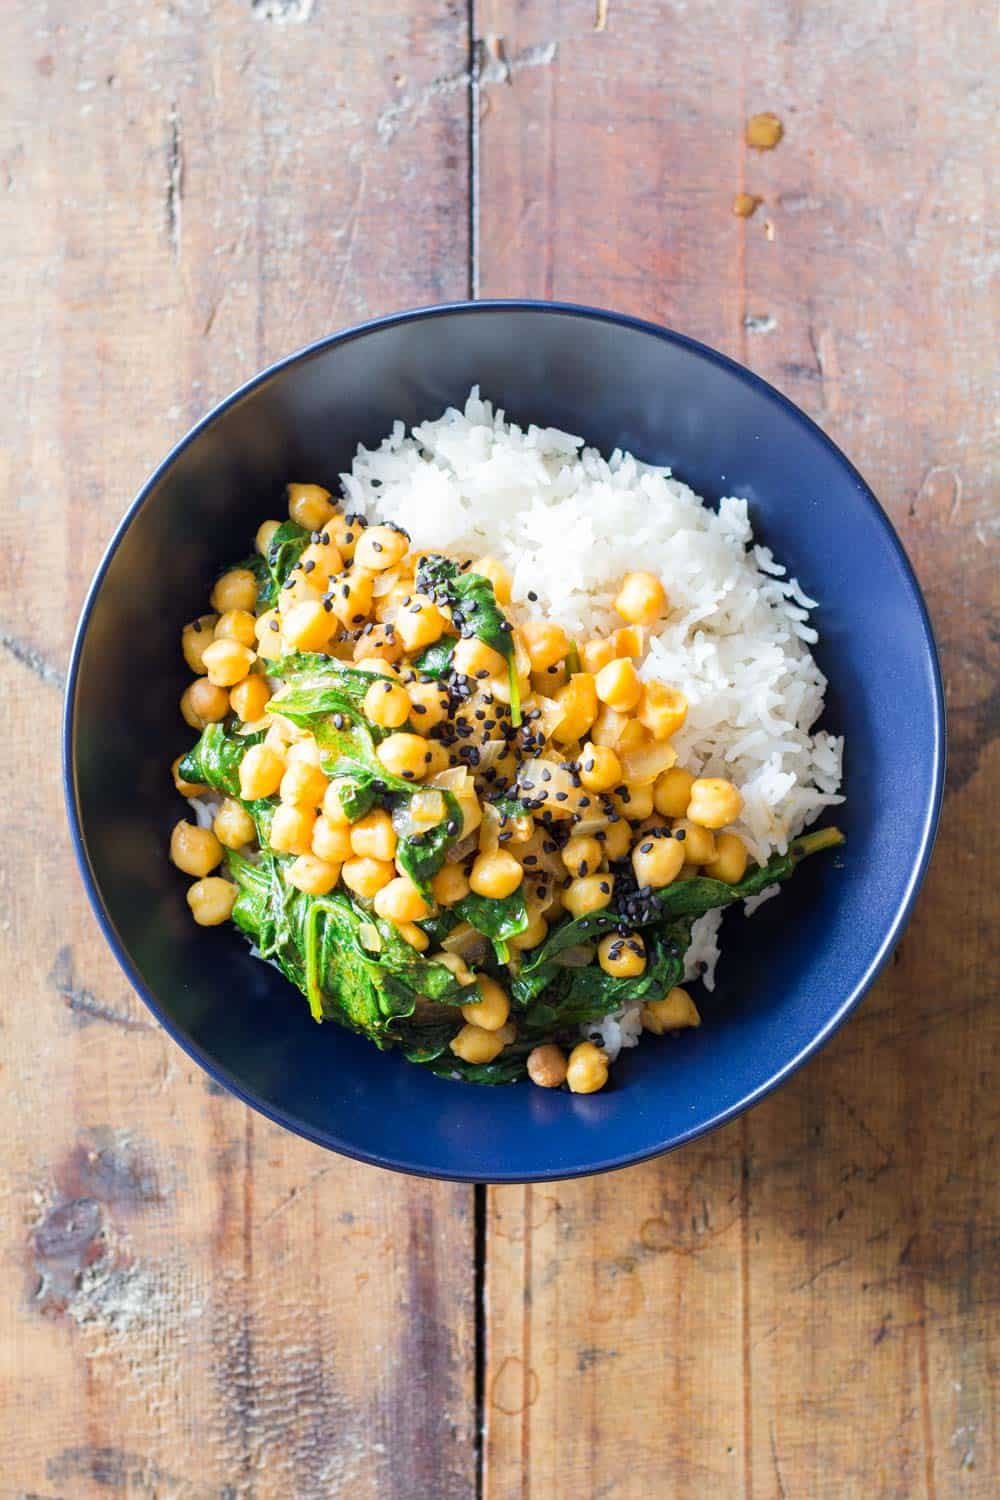 A (vegan) Chickpea Spinach Curry made in 20 minutes from start to finish. Who says eating healthy requires a lot of time and effort?